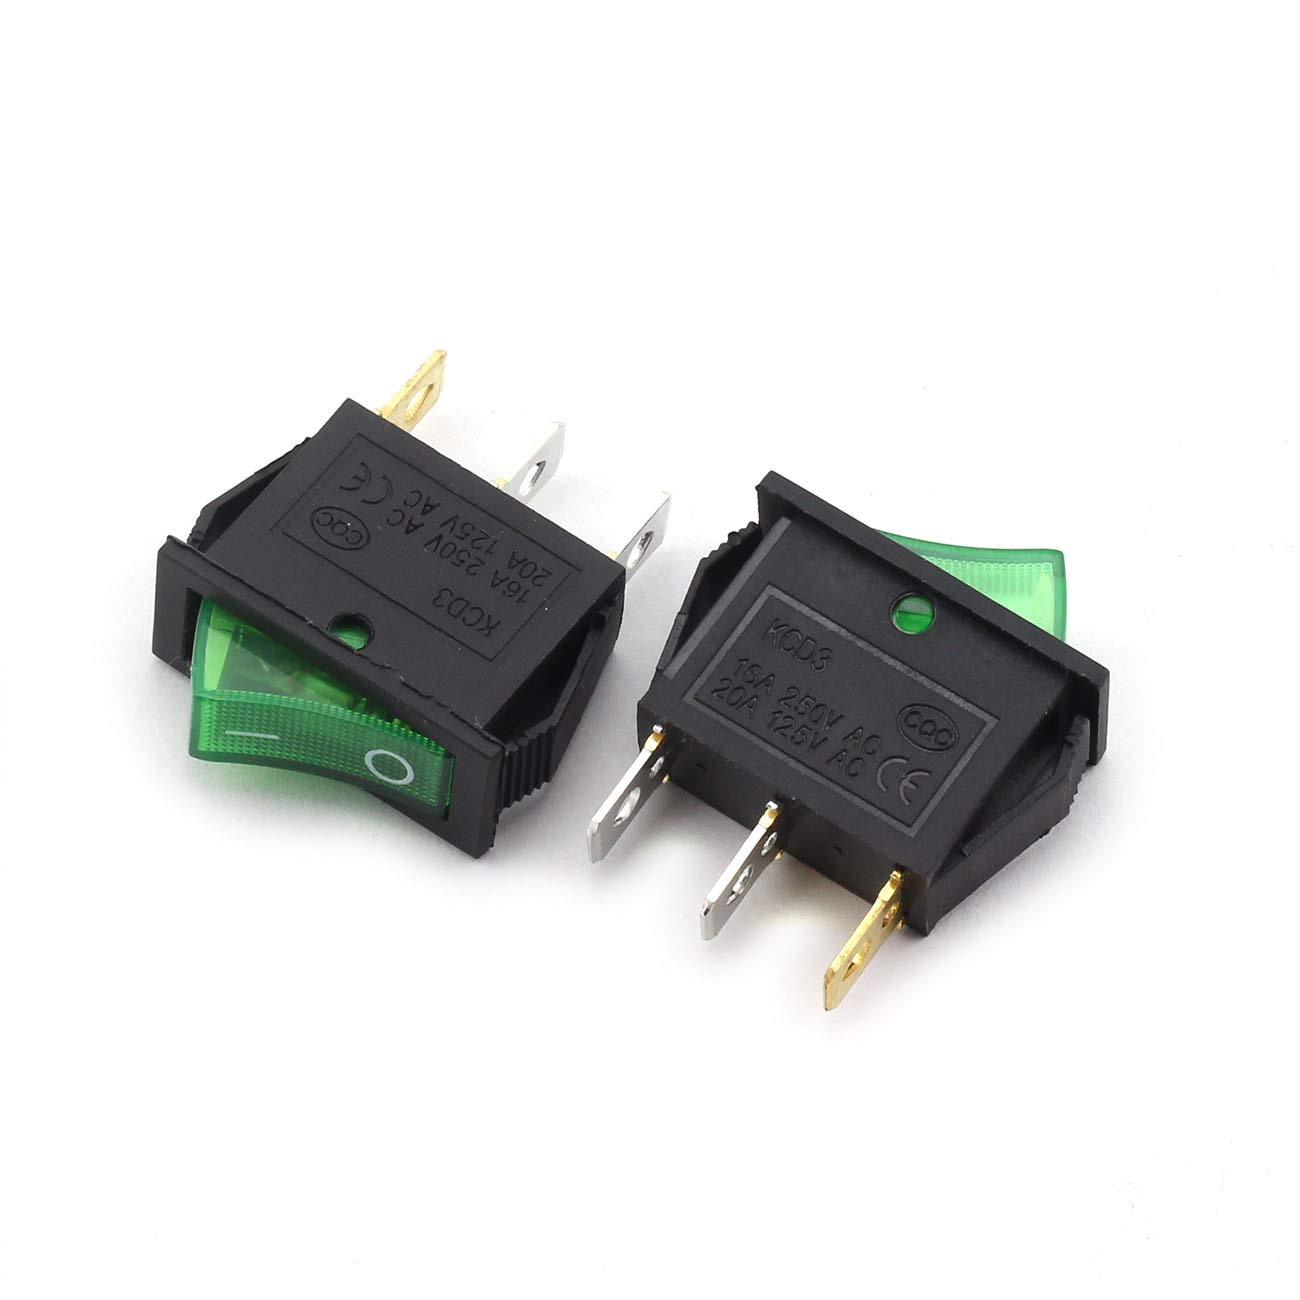 Longdex 5pcs AC 250V 16A ON//Off Boat Rocker Switch Small Appliances Power Switch 2 Position I-O 3Pin SPST Green Button Switch with Light